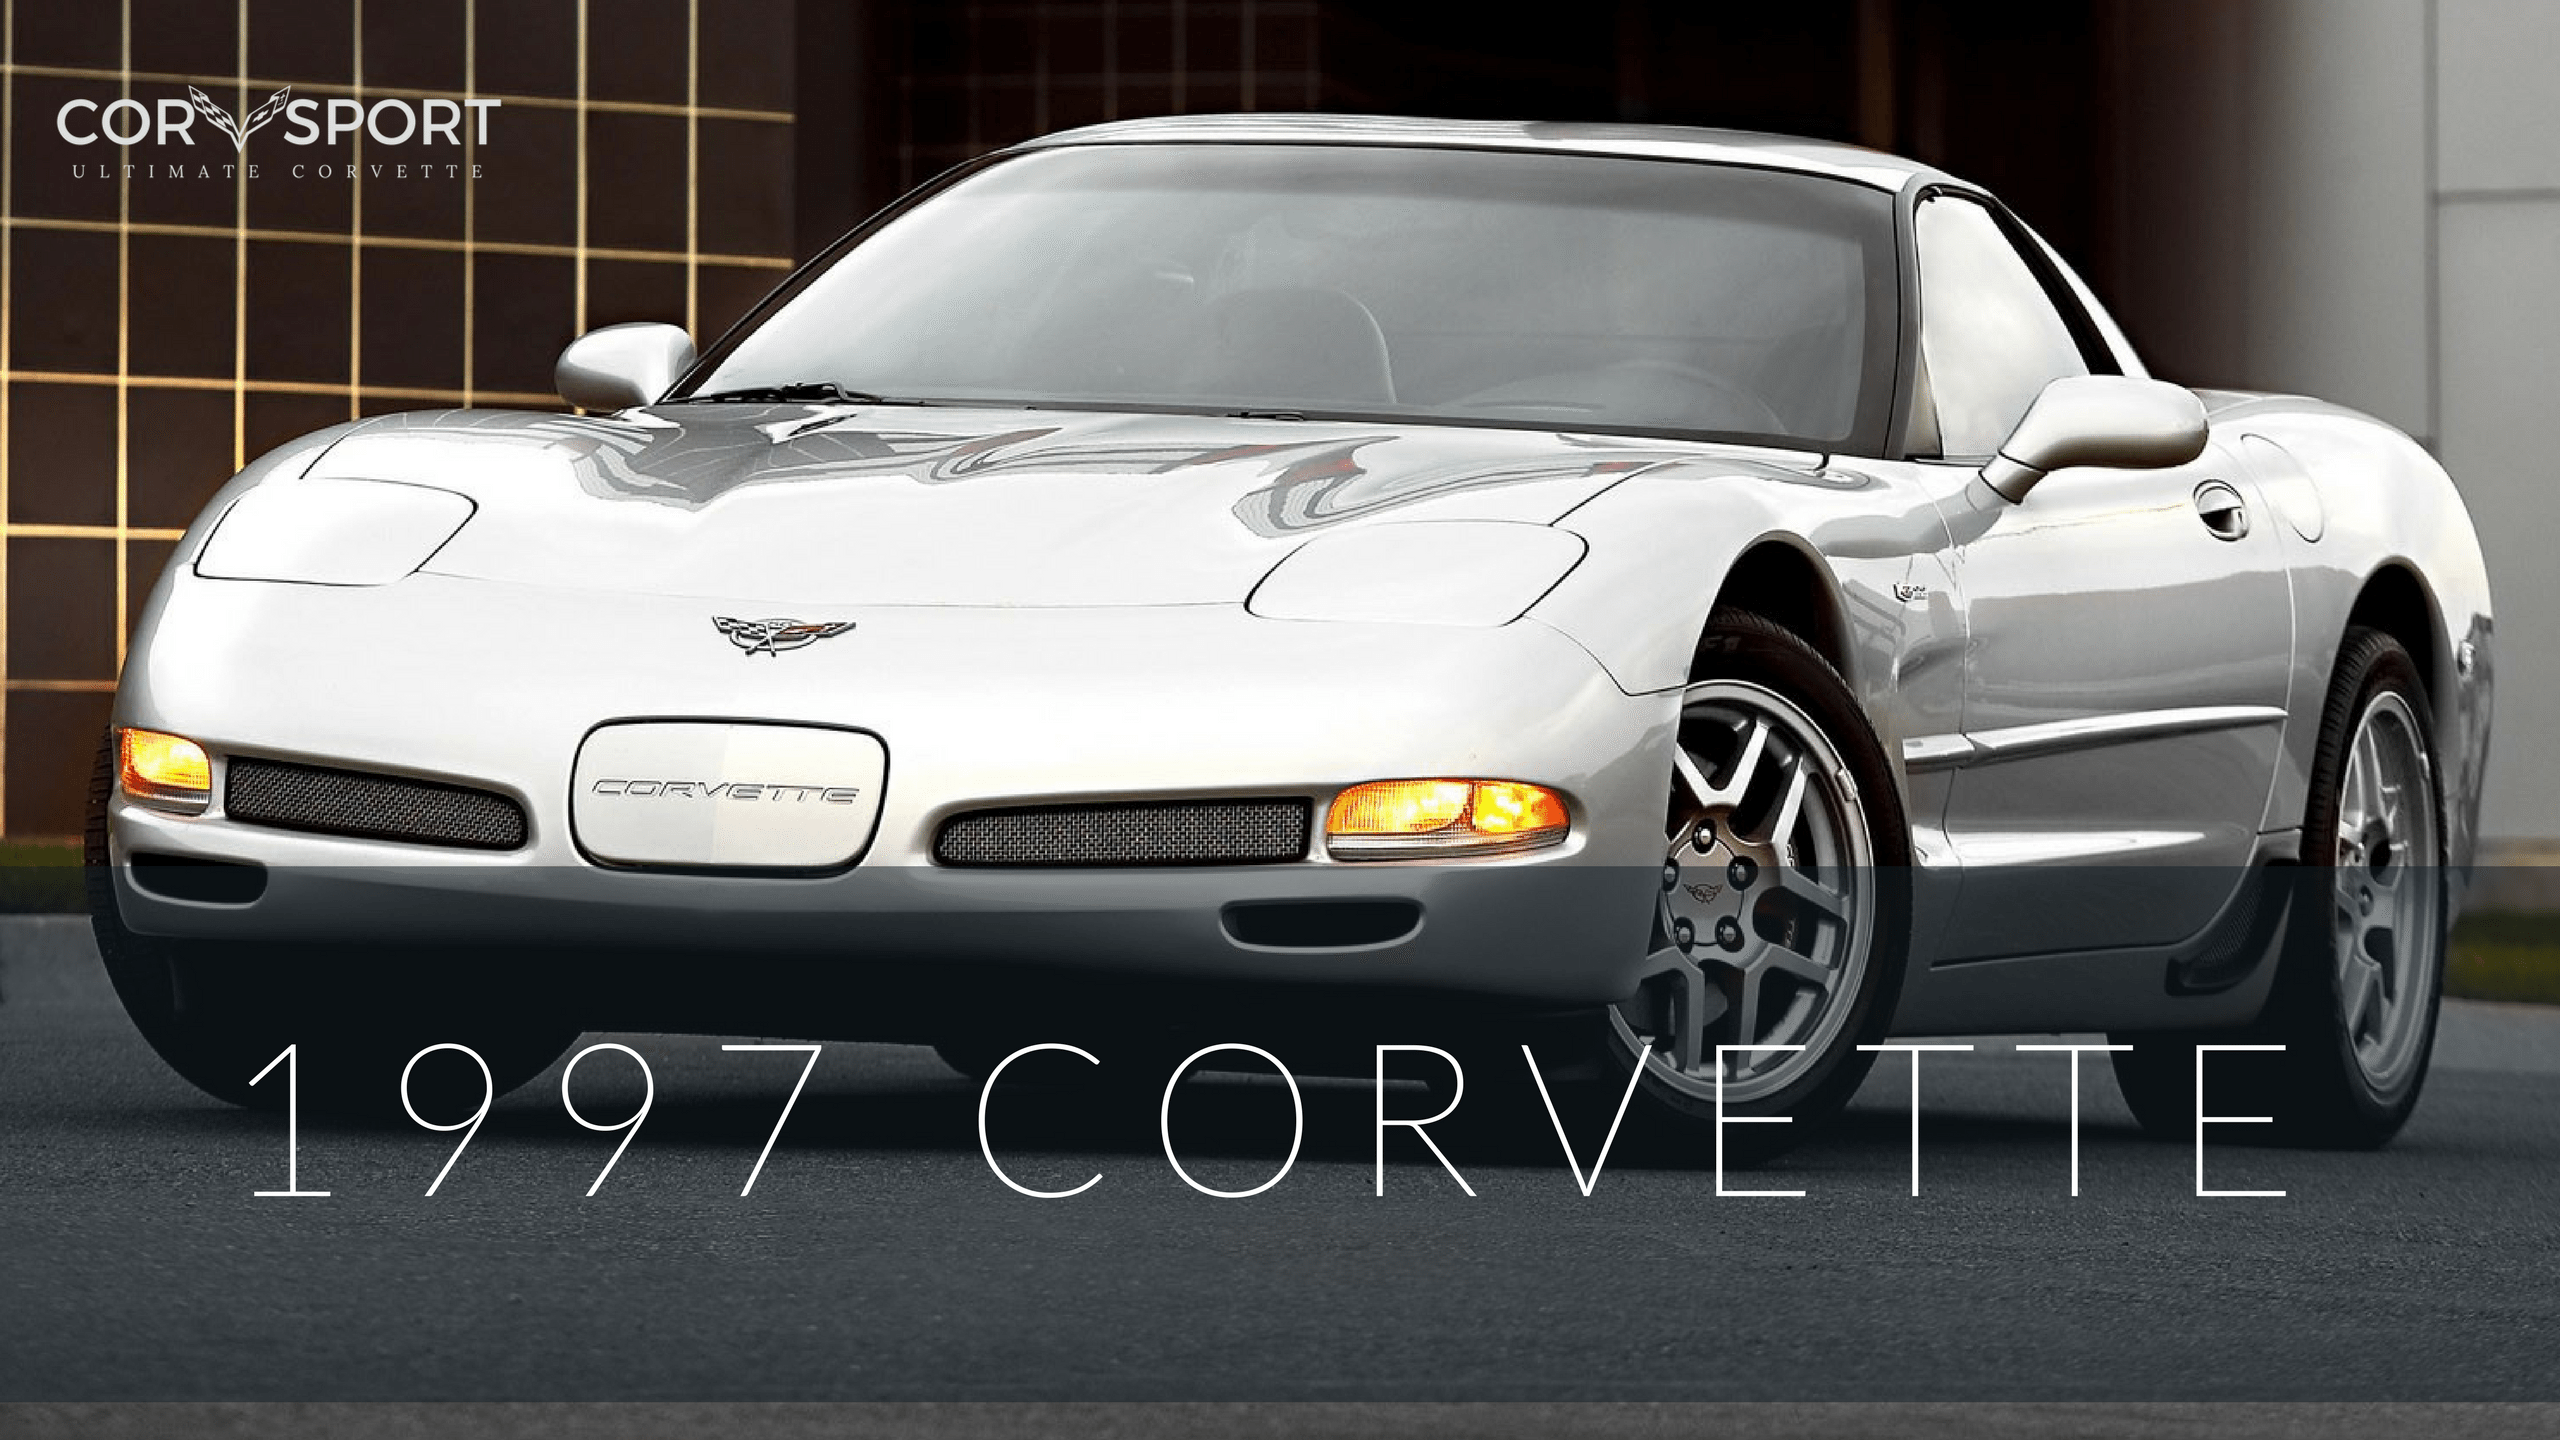 1997 Corvette Tile 1997 c5 corvette ultimate guide (overview, specs, vin info C5 Corvette Fuse Layout at n-0.co